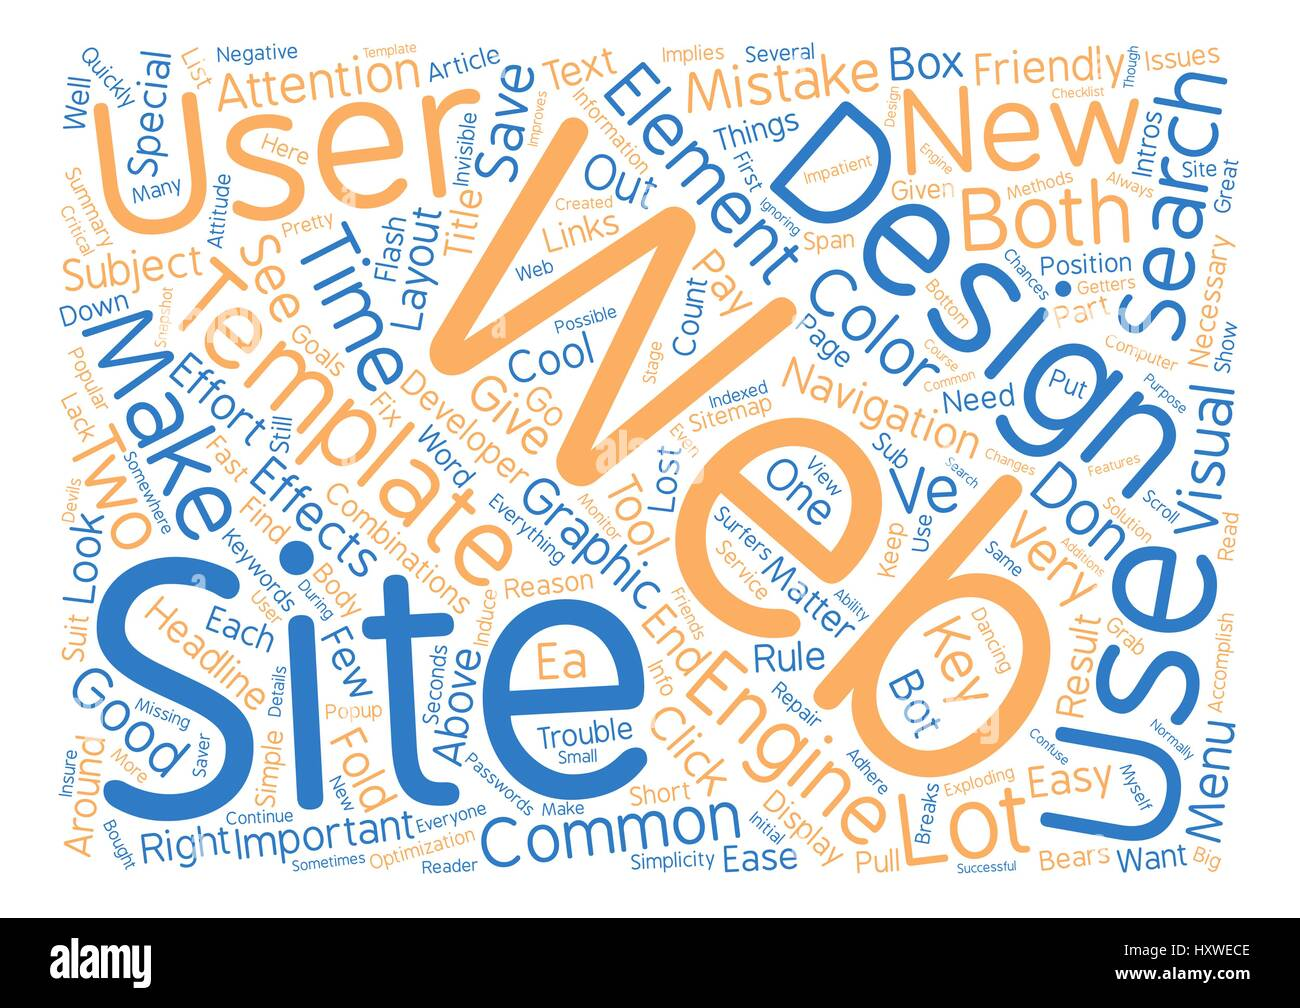 Mistakes Word Cloud Concept Text Stockfotos & Mistakes Word Cloud ...